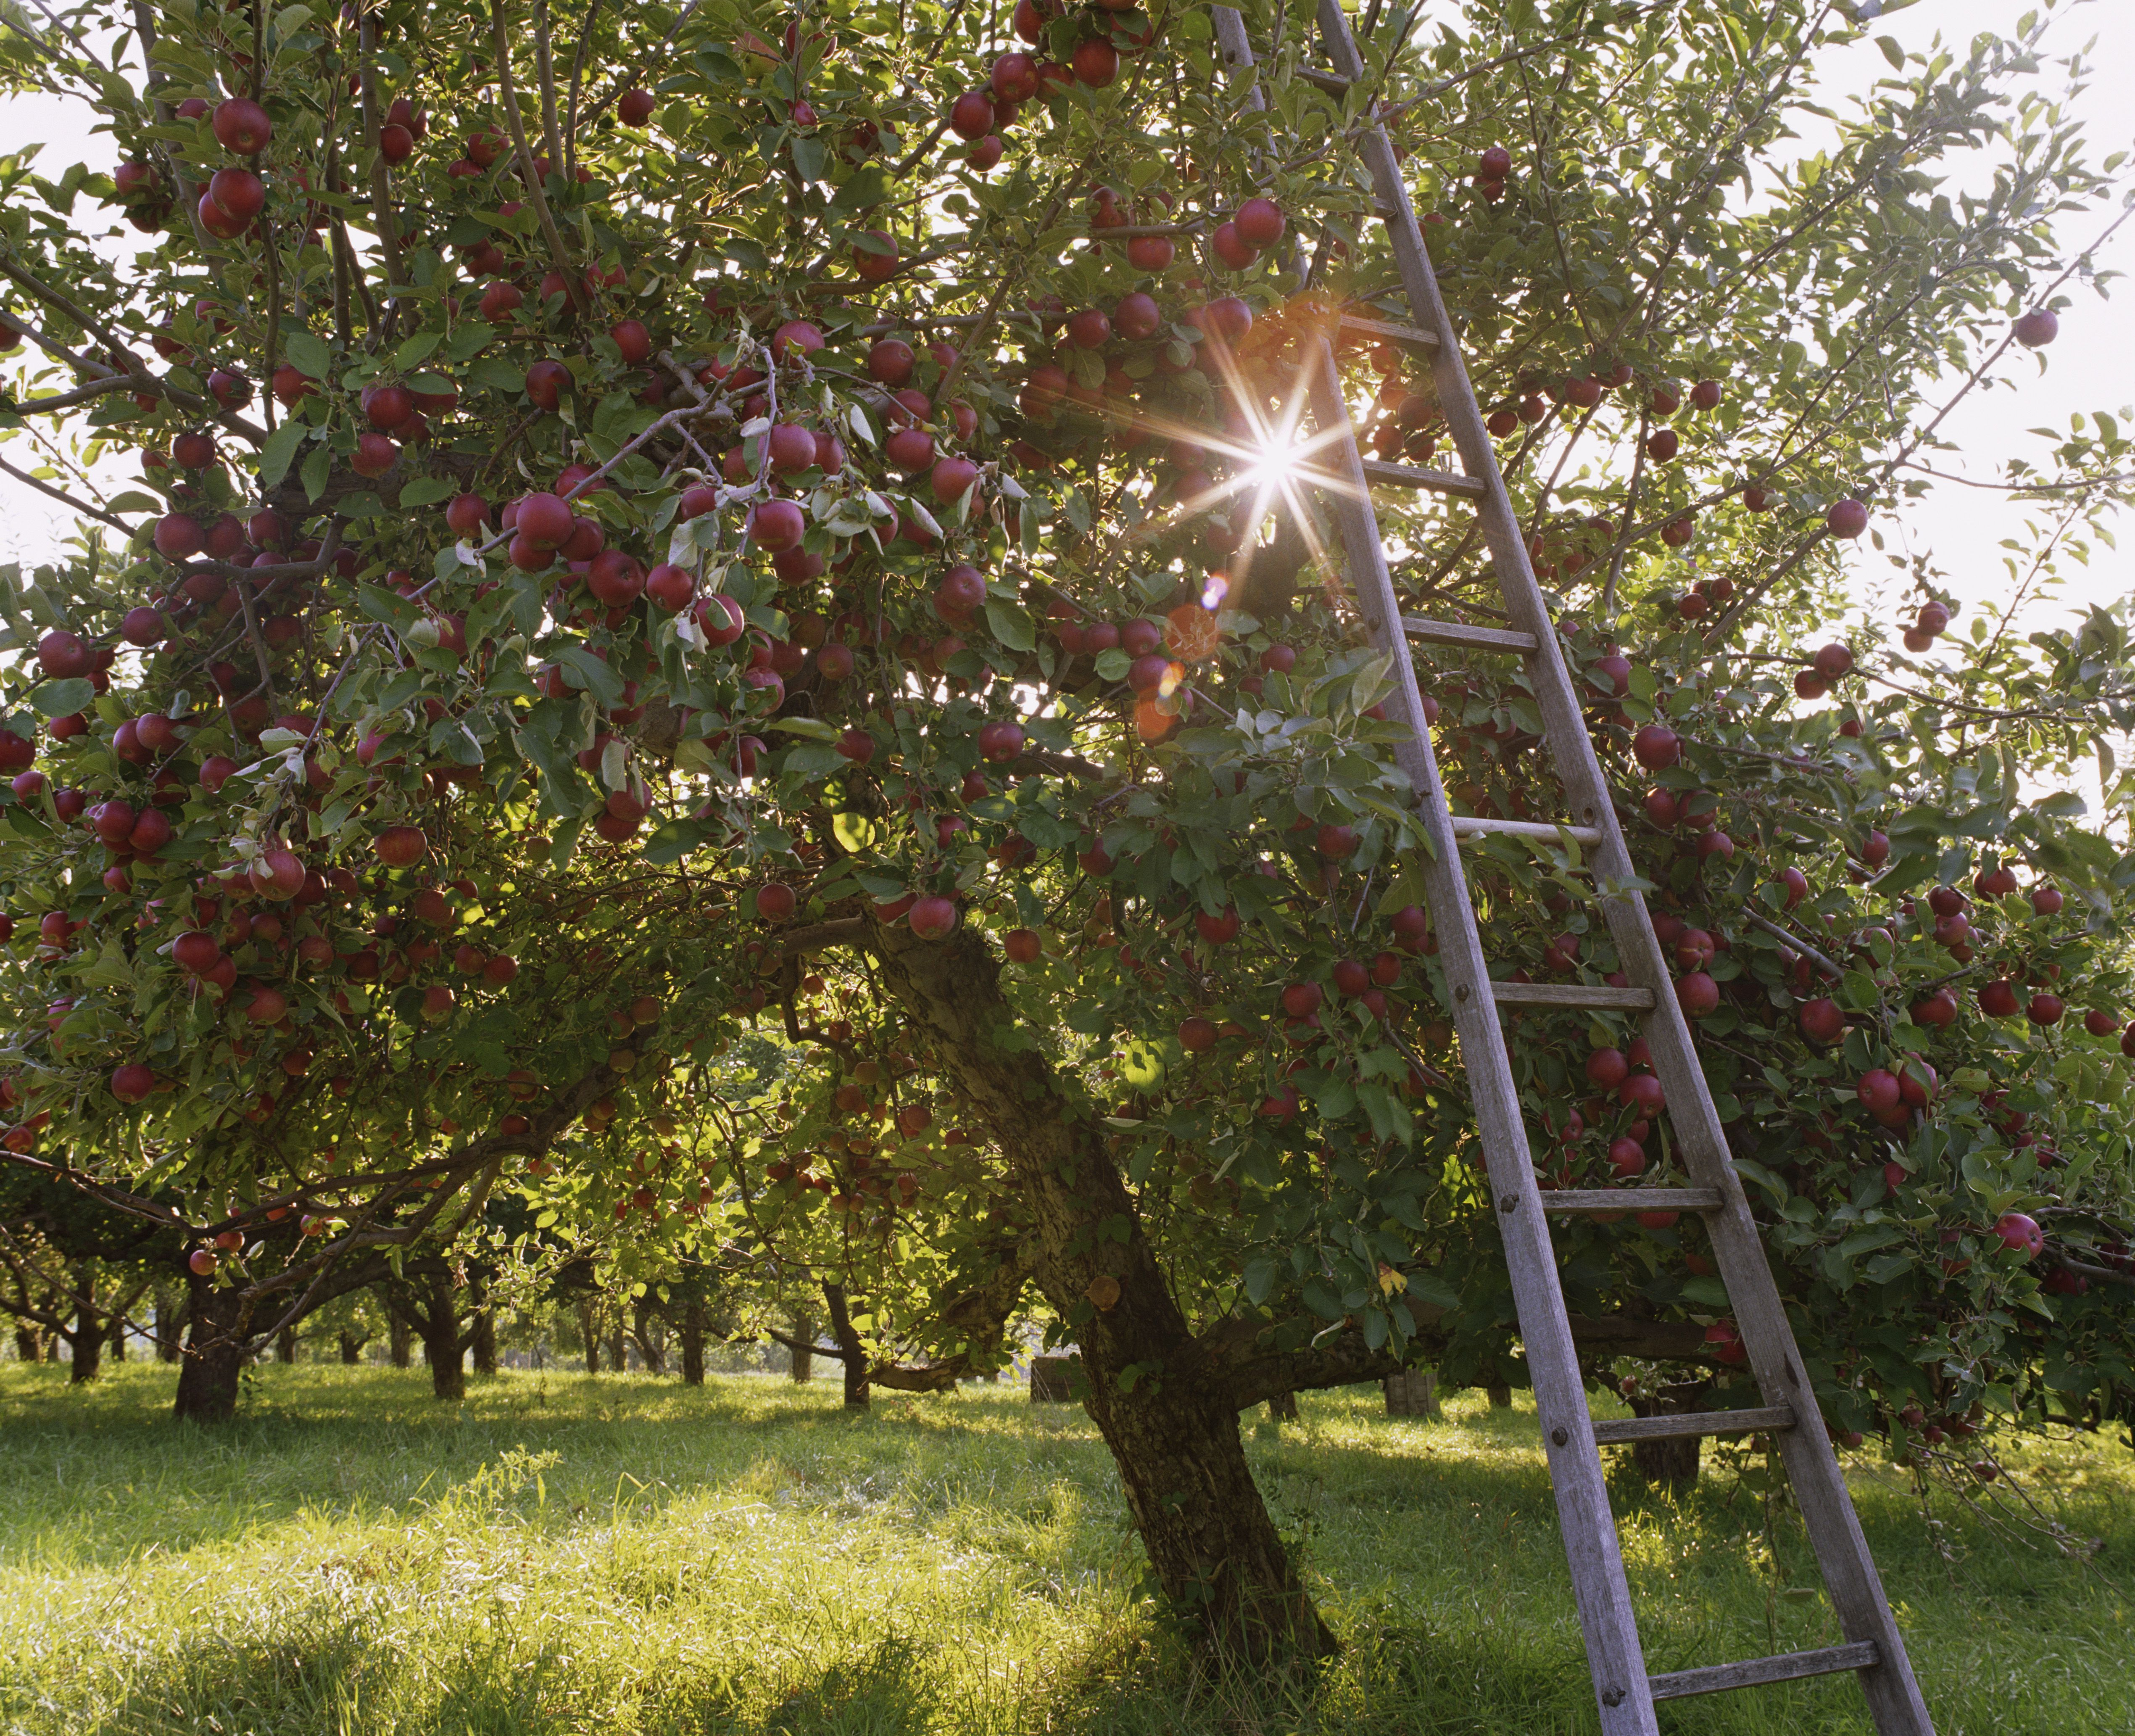 Prune Your Overgrown Apple Tree To Boost Its Vigor Apple Tree Farm Apple Tree Care Pruning Apple Trees